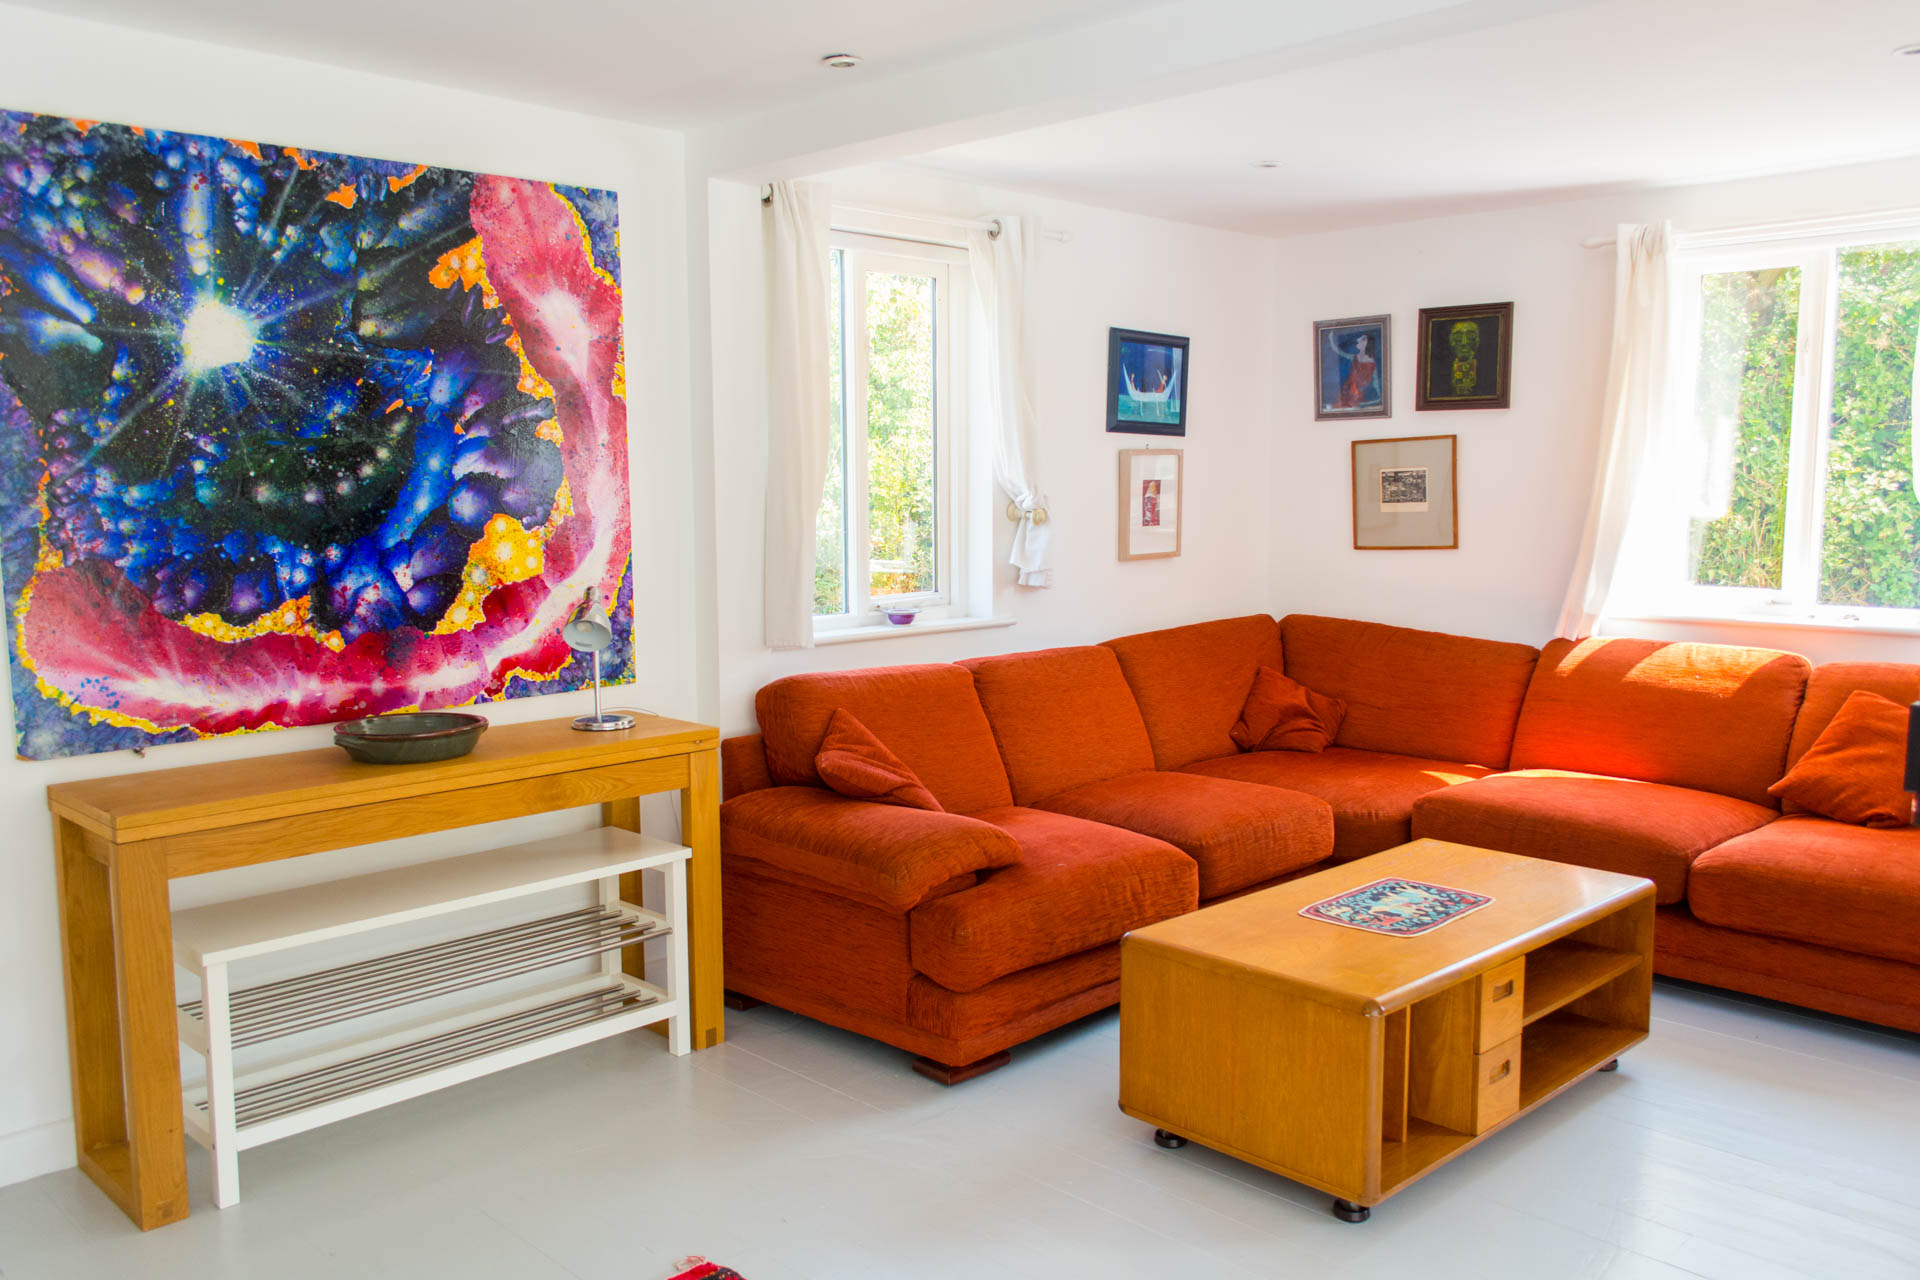 Photo of spacious living area and coffee table with colourful art work on the walls.